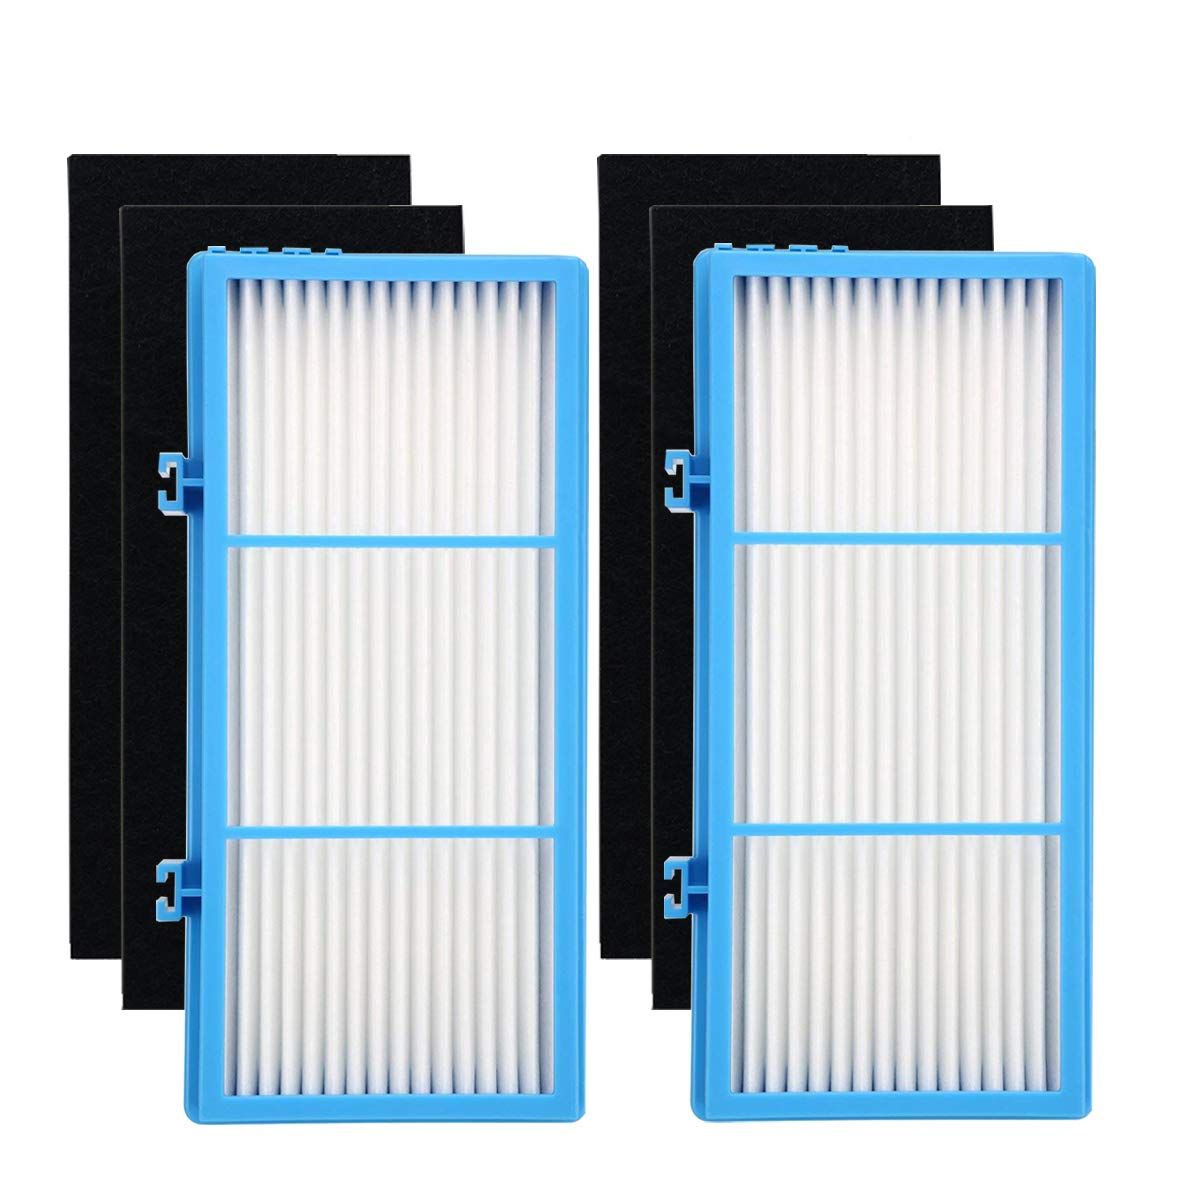 Yoodelife Replacement HEPA Filters for Holmes HAPF30AT Total Air Purifier AER1 Series (2 Packs) and Carbon Booster Filters for Holmes HAP242-NUC (4 Packs)